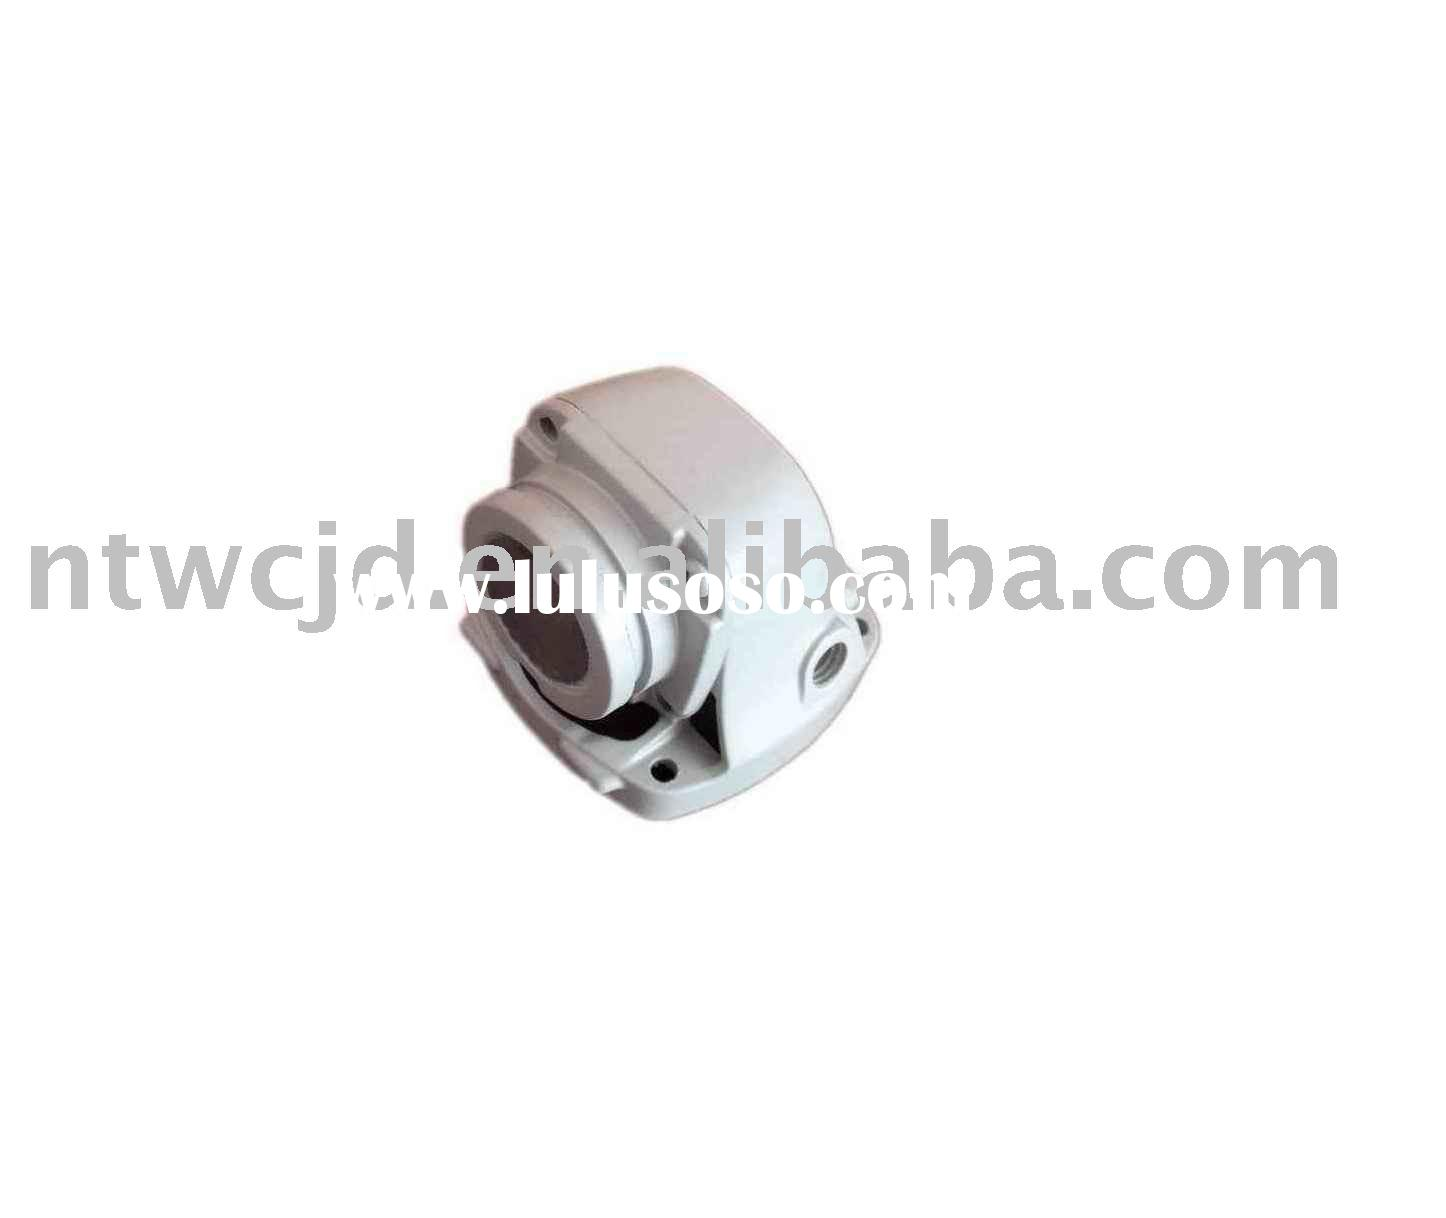 BOSCH 100 angle grinder parts  aluminum die casting